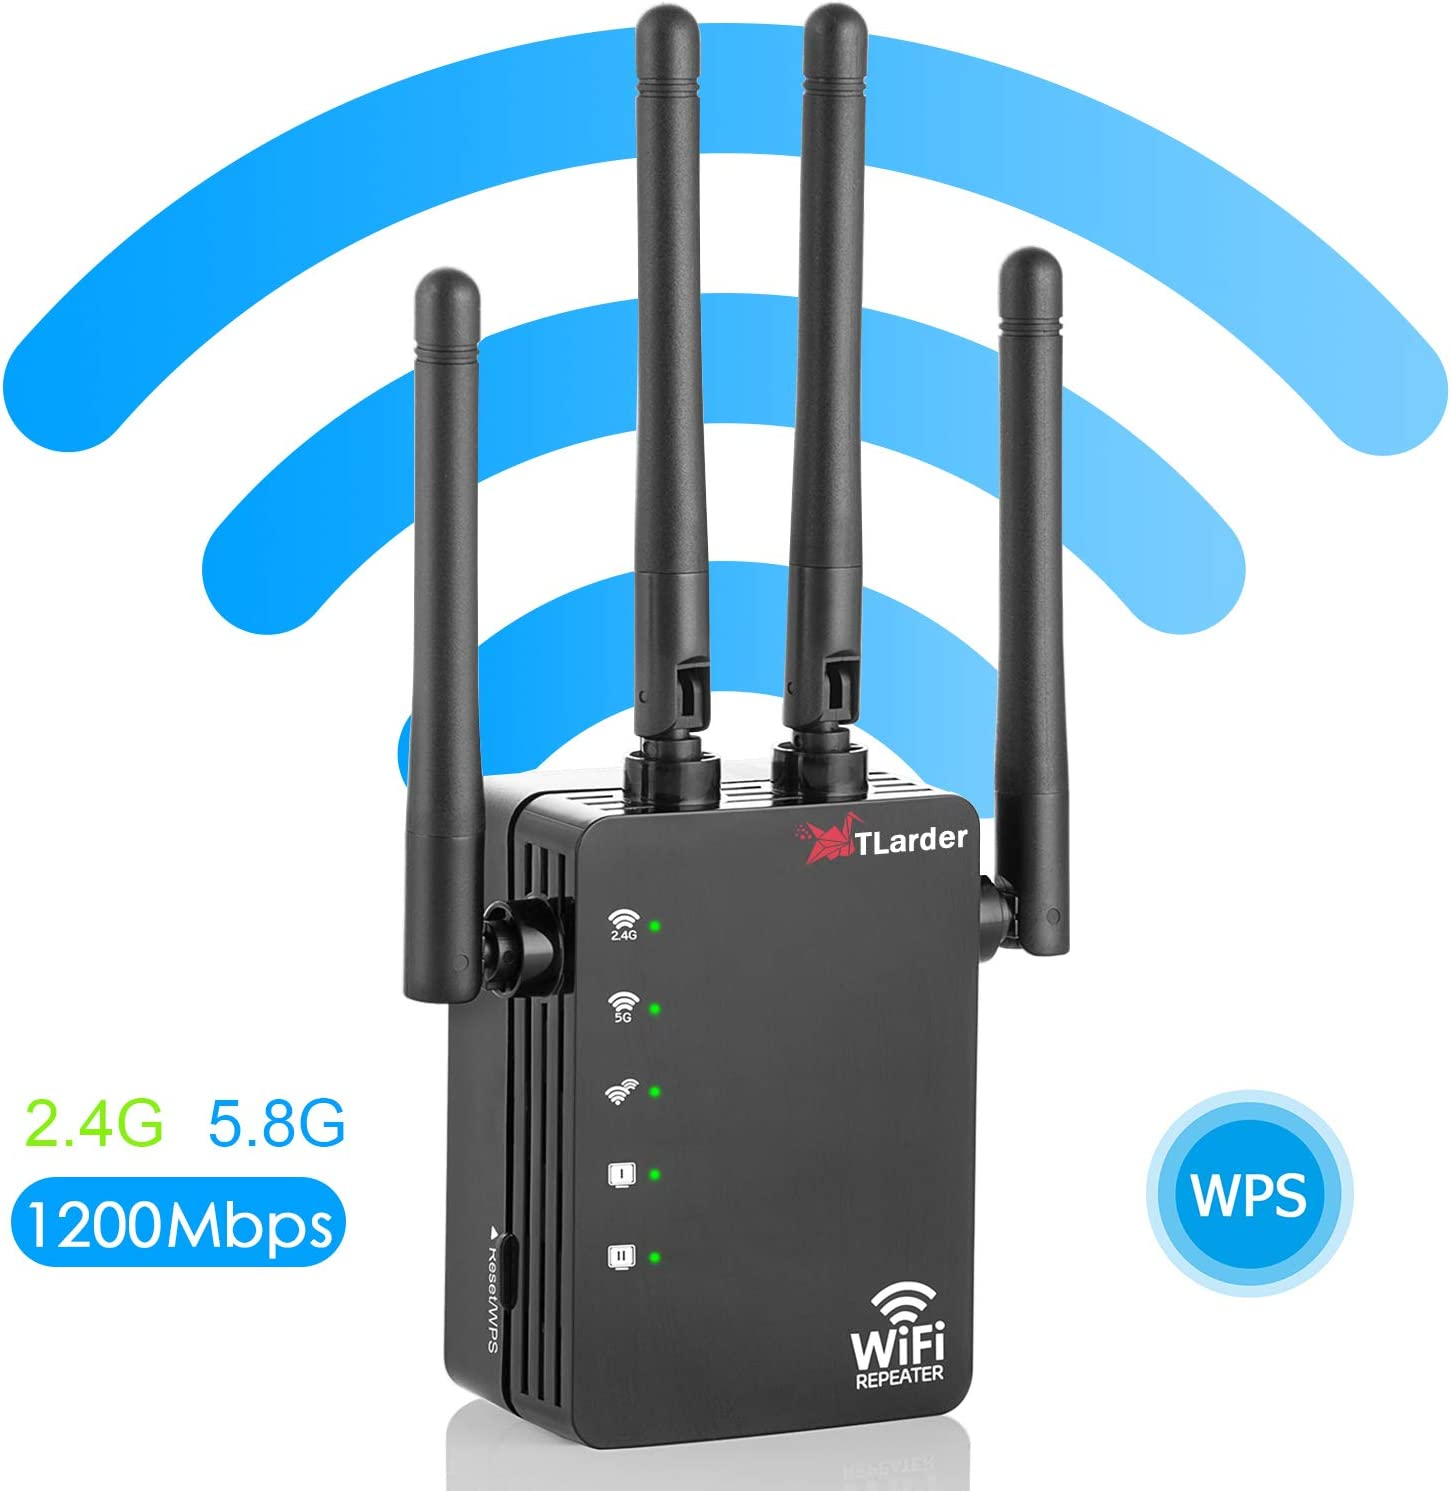 WiFi Range Extender Repeater,1200Mbps Router Wireless WiFi Signal Booster,2.4 and 5GHz WiFi Extender Signal Amplifier with AP/Router/Repeater Mode,Access Point   Easy Set-Up   2020 Upgraded (Black)